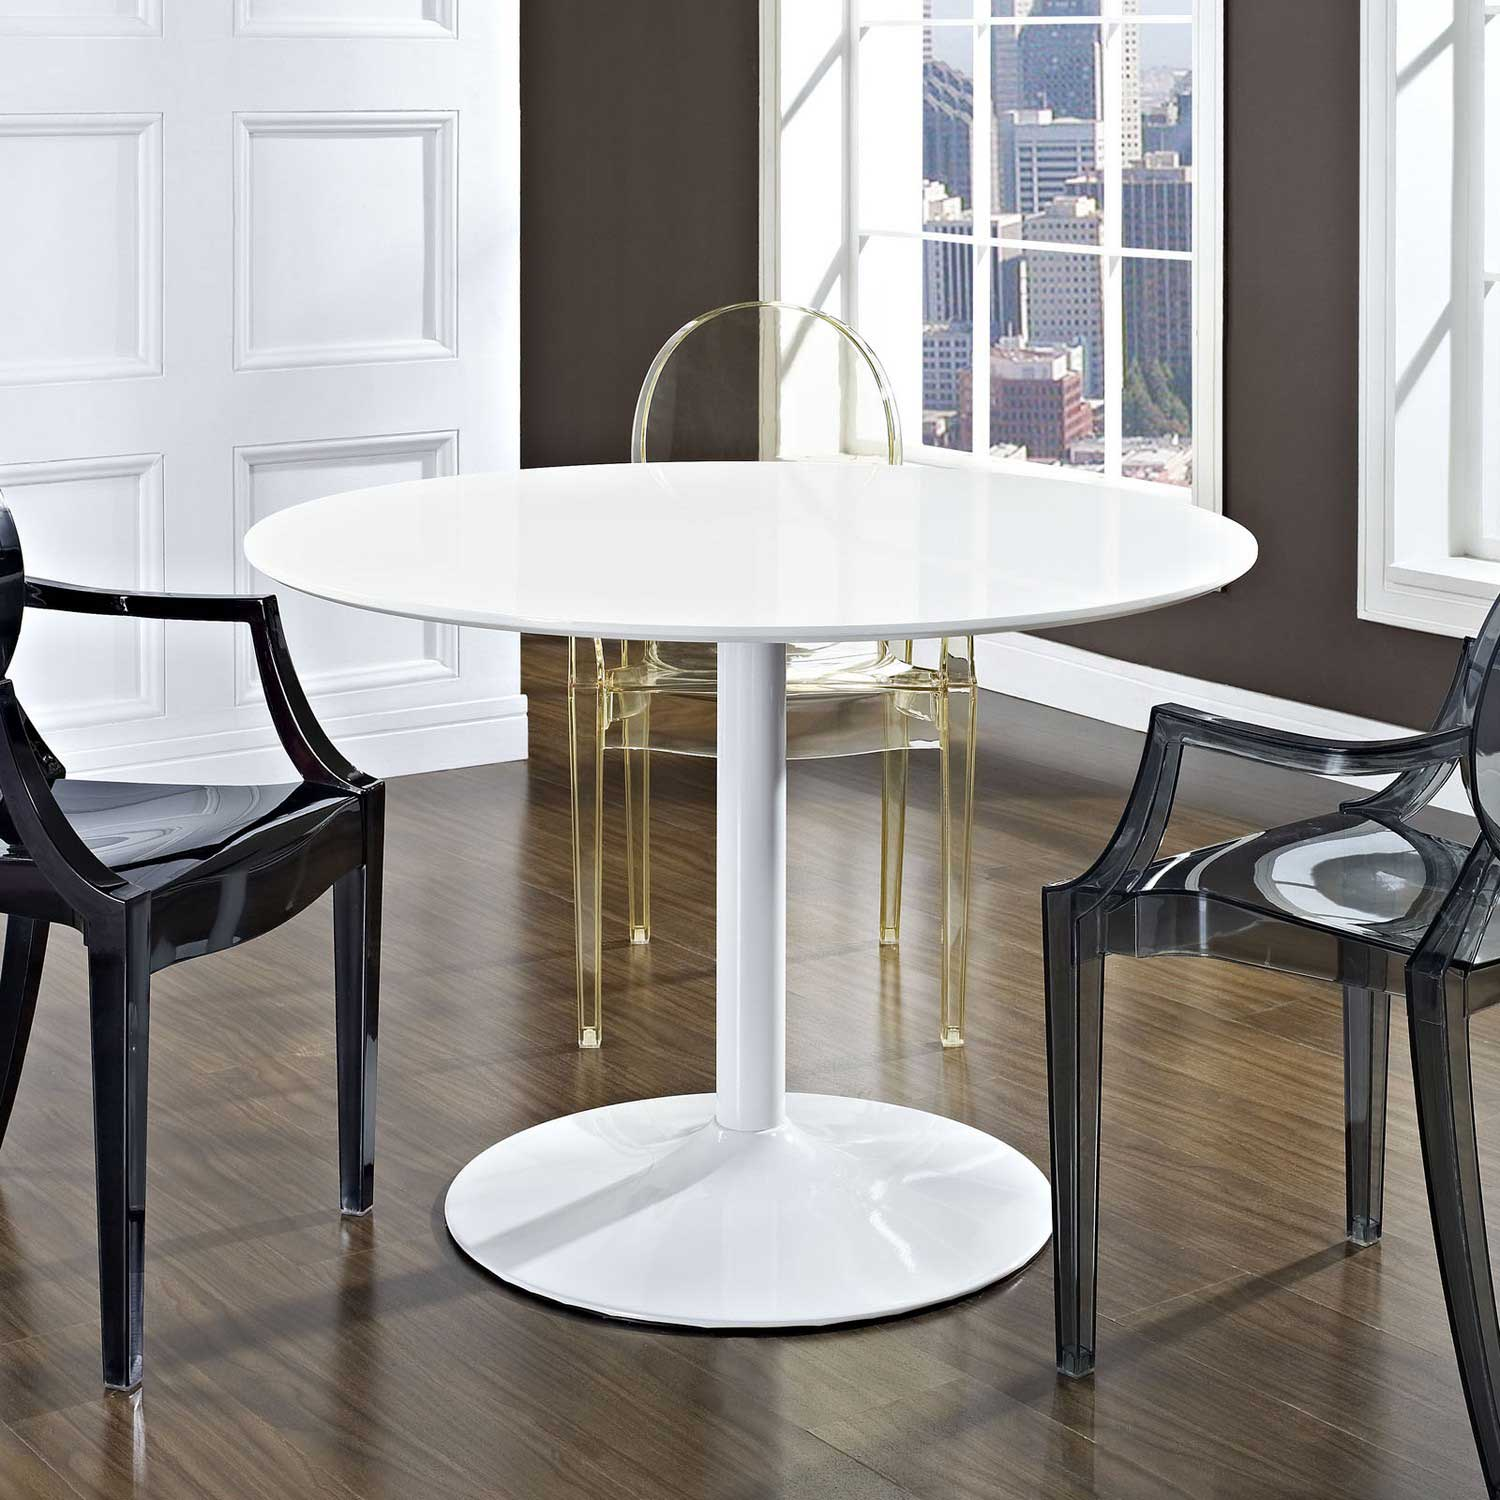 Modway Revolve Dining Table - White